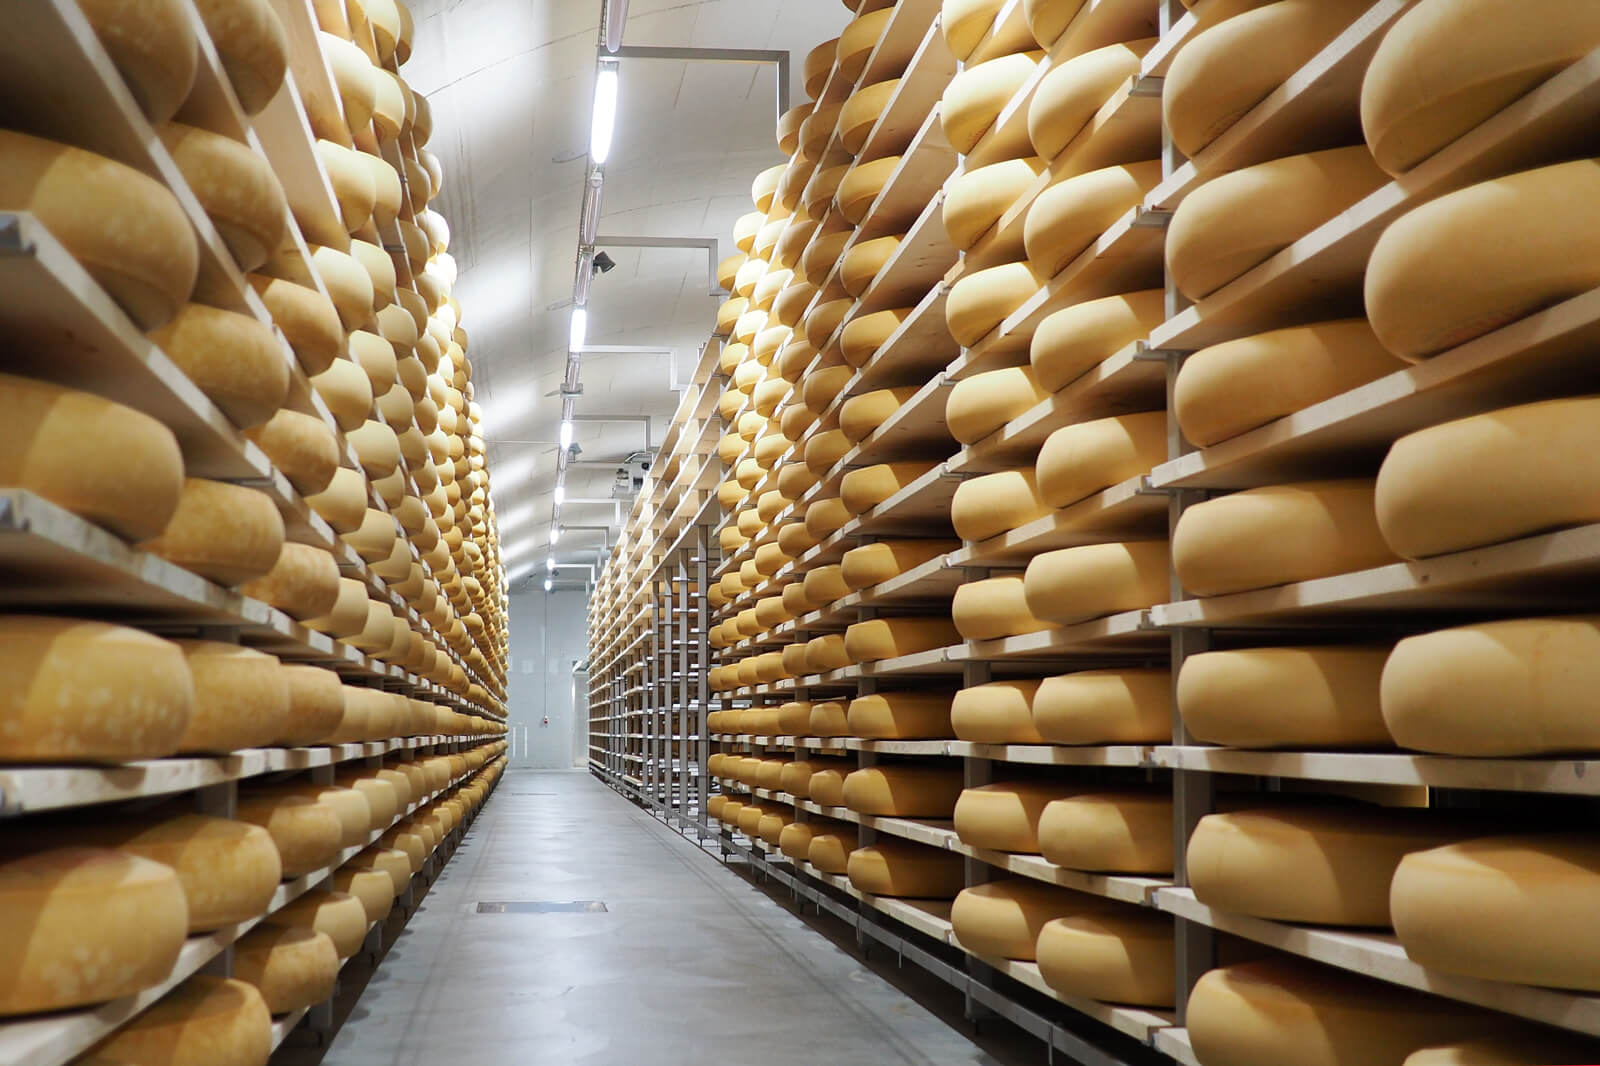 Emmentaler Cheese Storage Facility in Switzerland